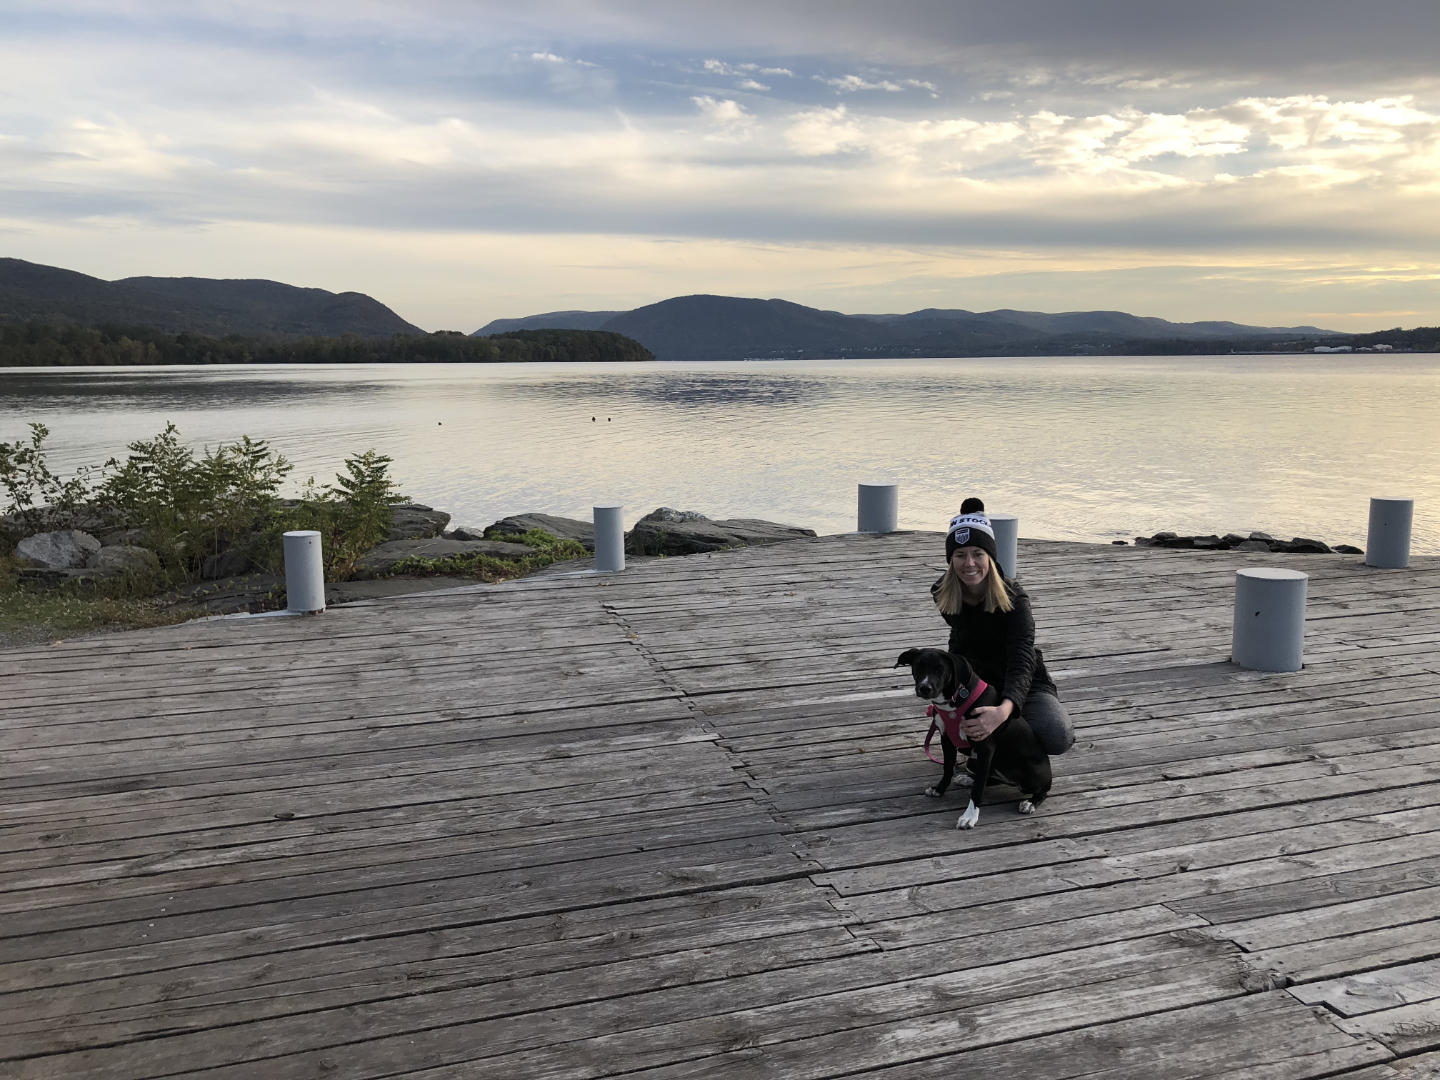 My wife and dog at Long Dock Park in Beacon, NY